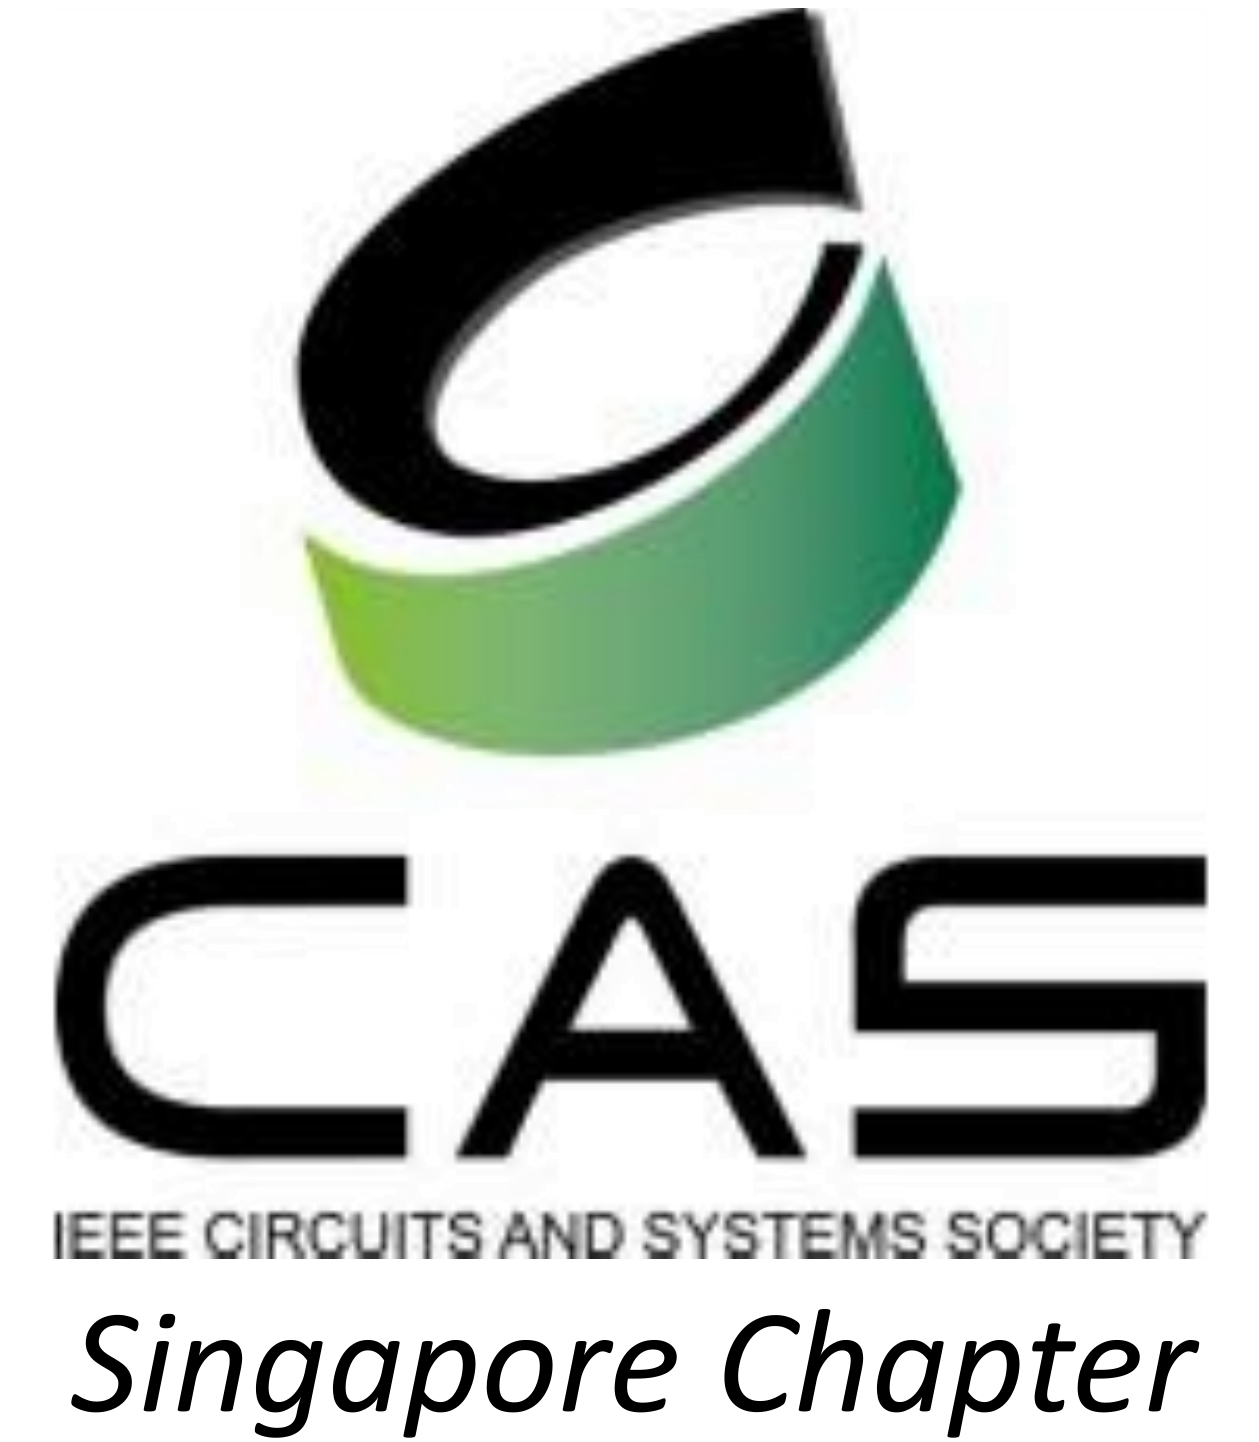 IEEE CAS Singapore Chapter